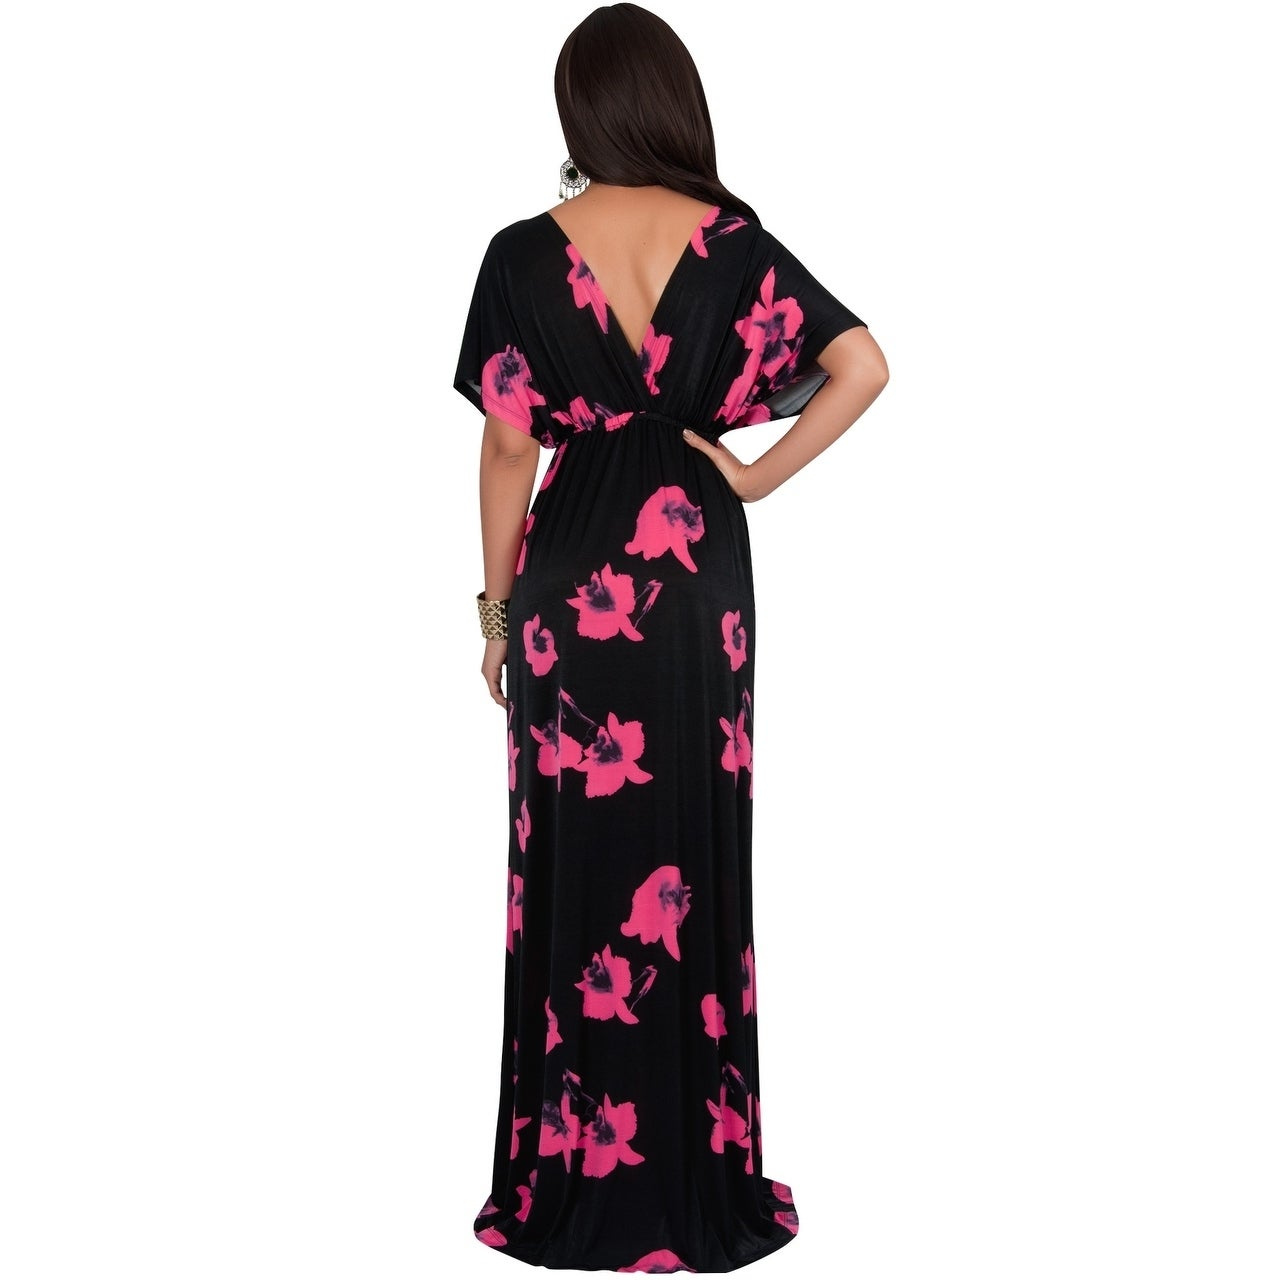 Shop KOH KOH Womens Short Sleeves Floral Printed Bat Wing Deep V-Neck Maxi  Dress - Ships To Canada - Overstock.ca - 18915604 15ca187b4